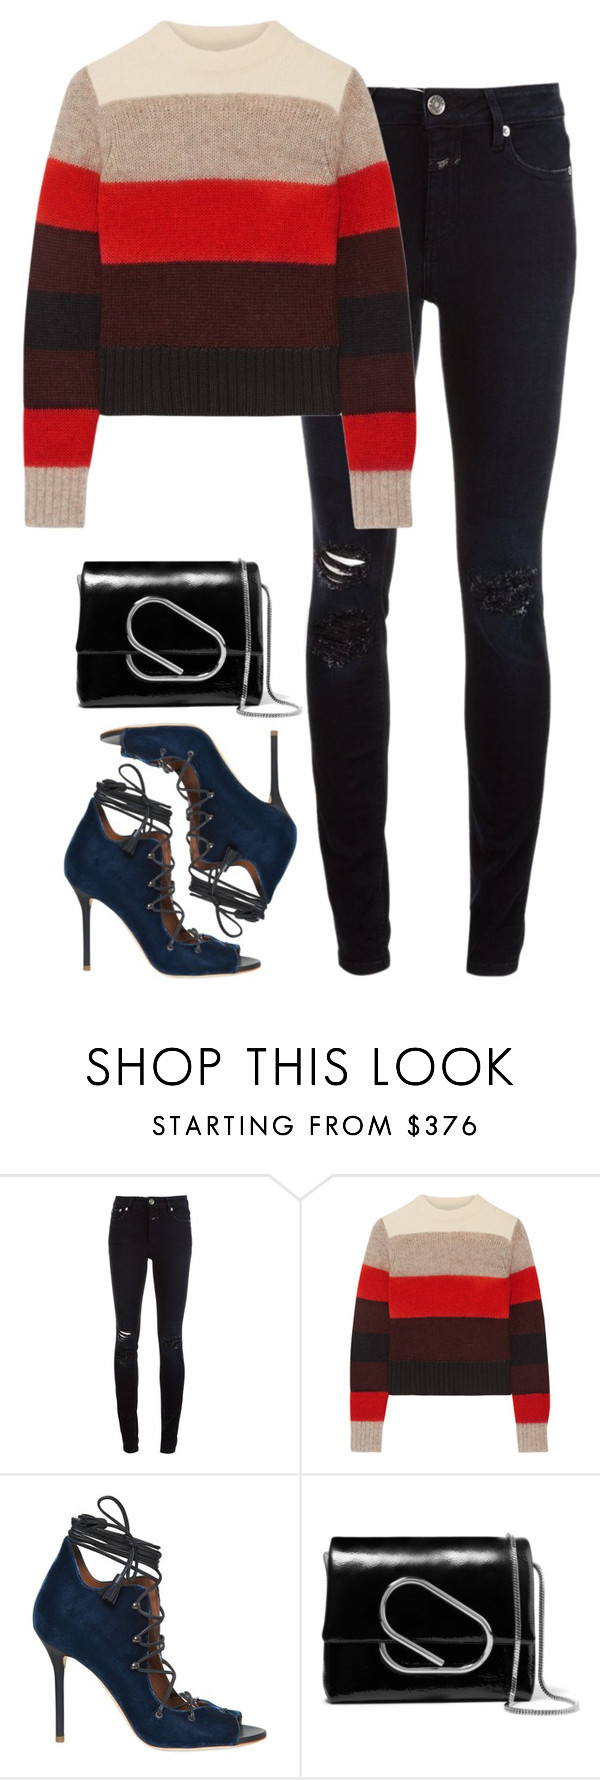 """""""Sin título #2407"""" by namelessale ❤ liked on Polyvore featuring Closed, rag & bone, Malone Souliers and 3.1 Phillip Lim"""